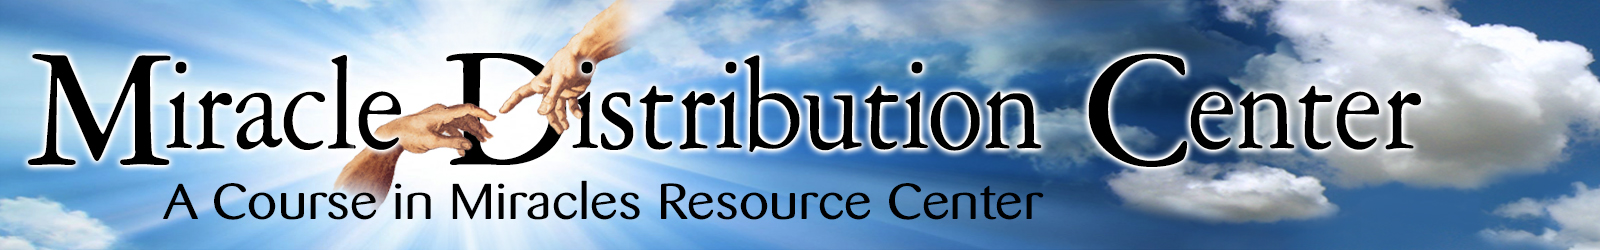 Miracle Distribution Center - A Course in Miracles